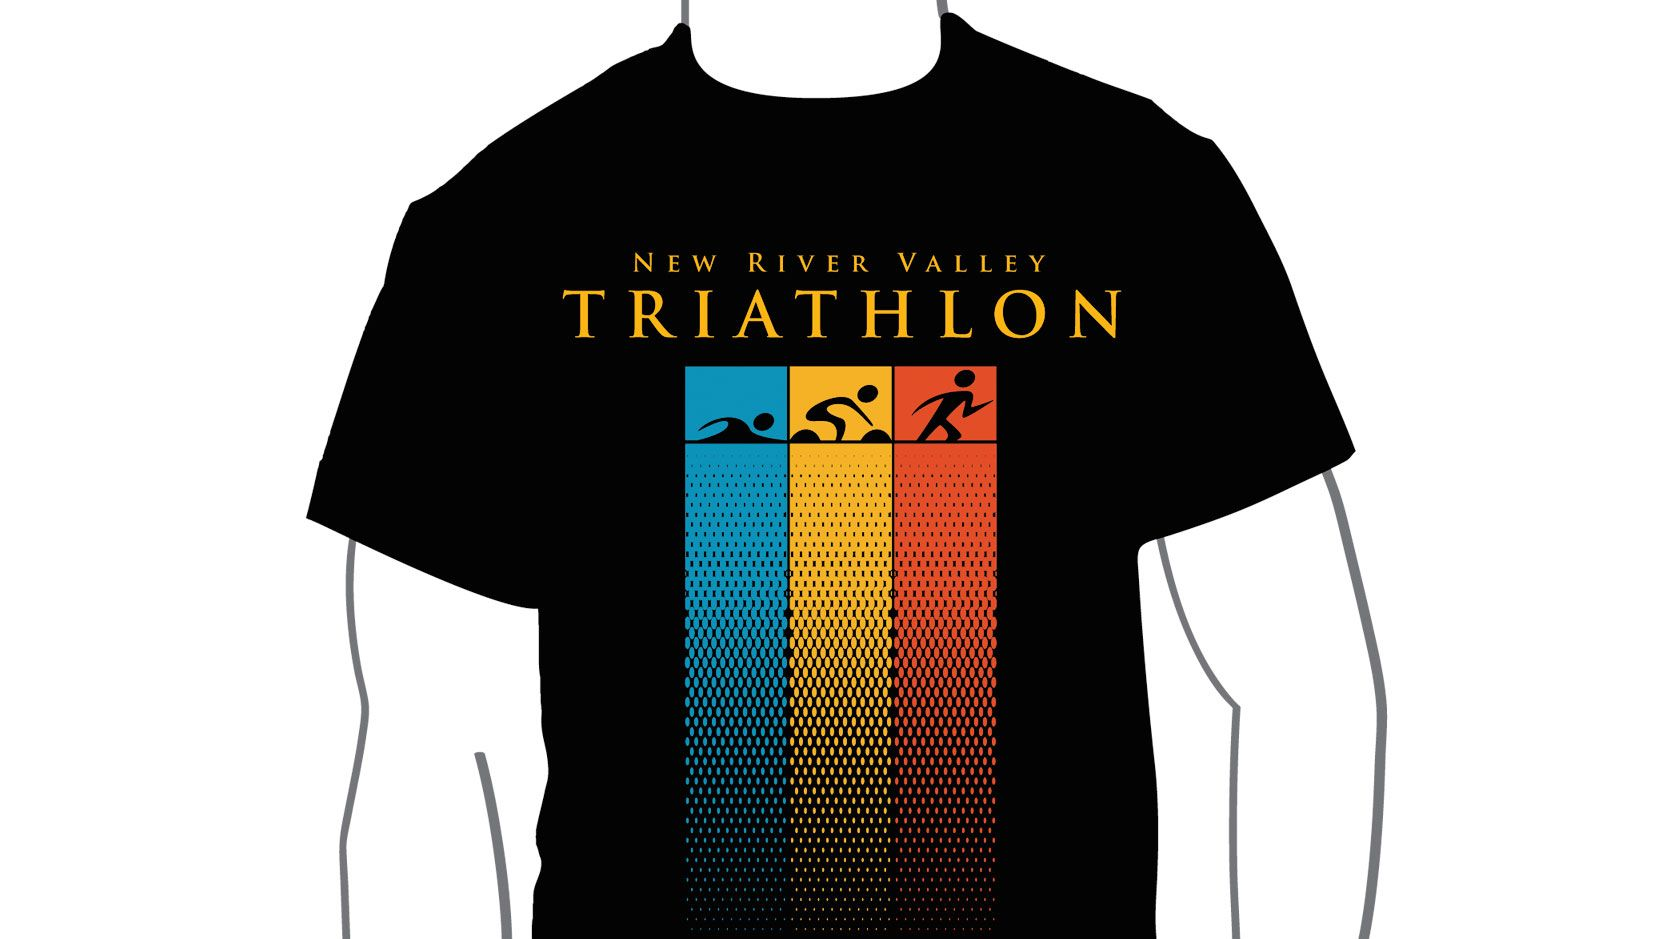 2f4f61131c triathlon shirt designs - Google Search | Sporty Shirt Designs ...